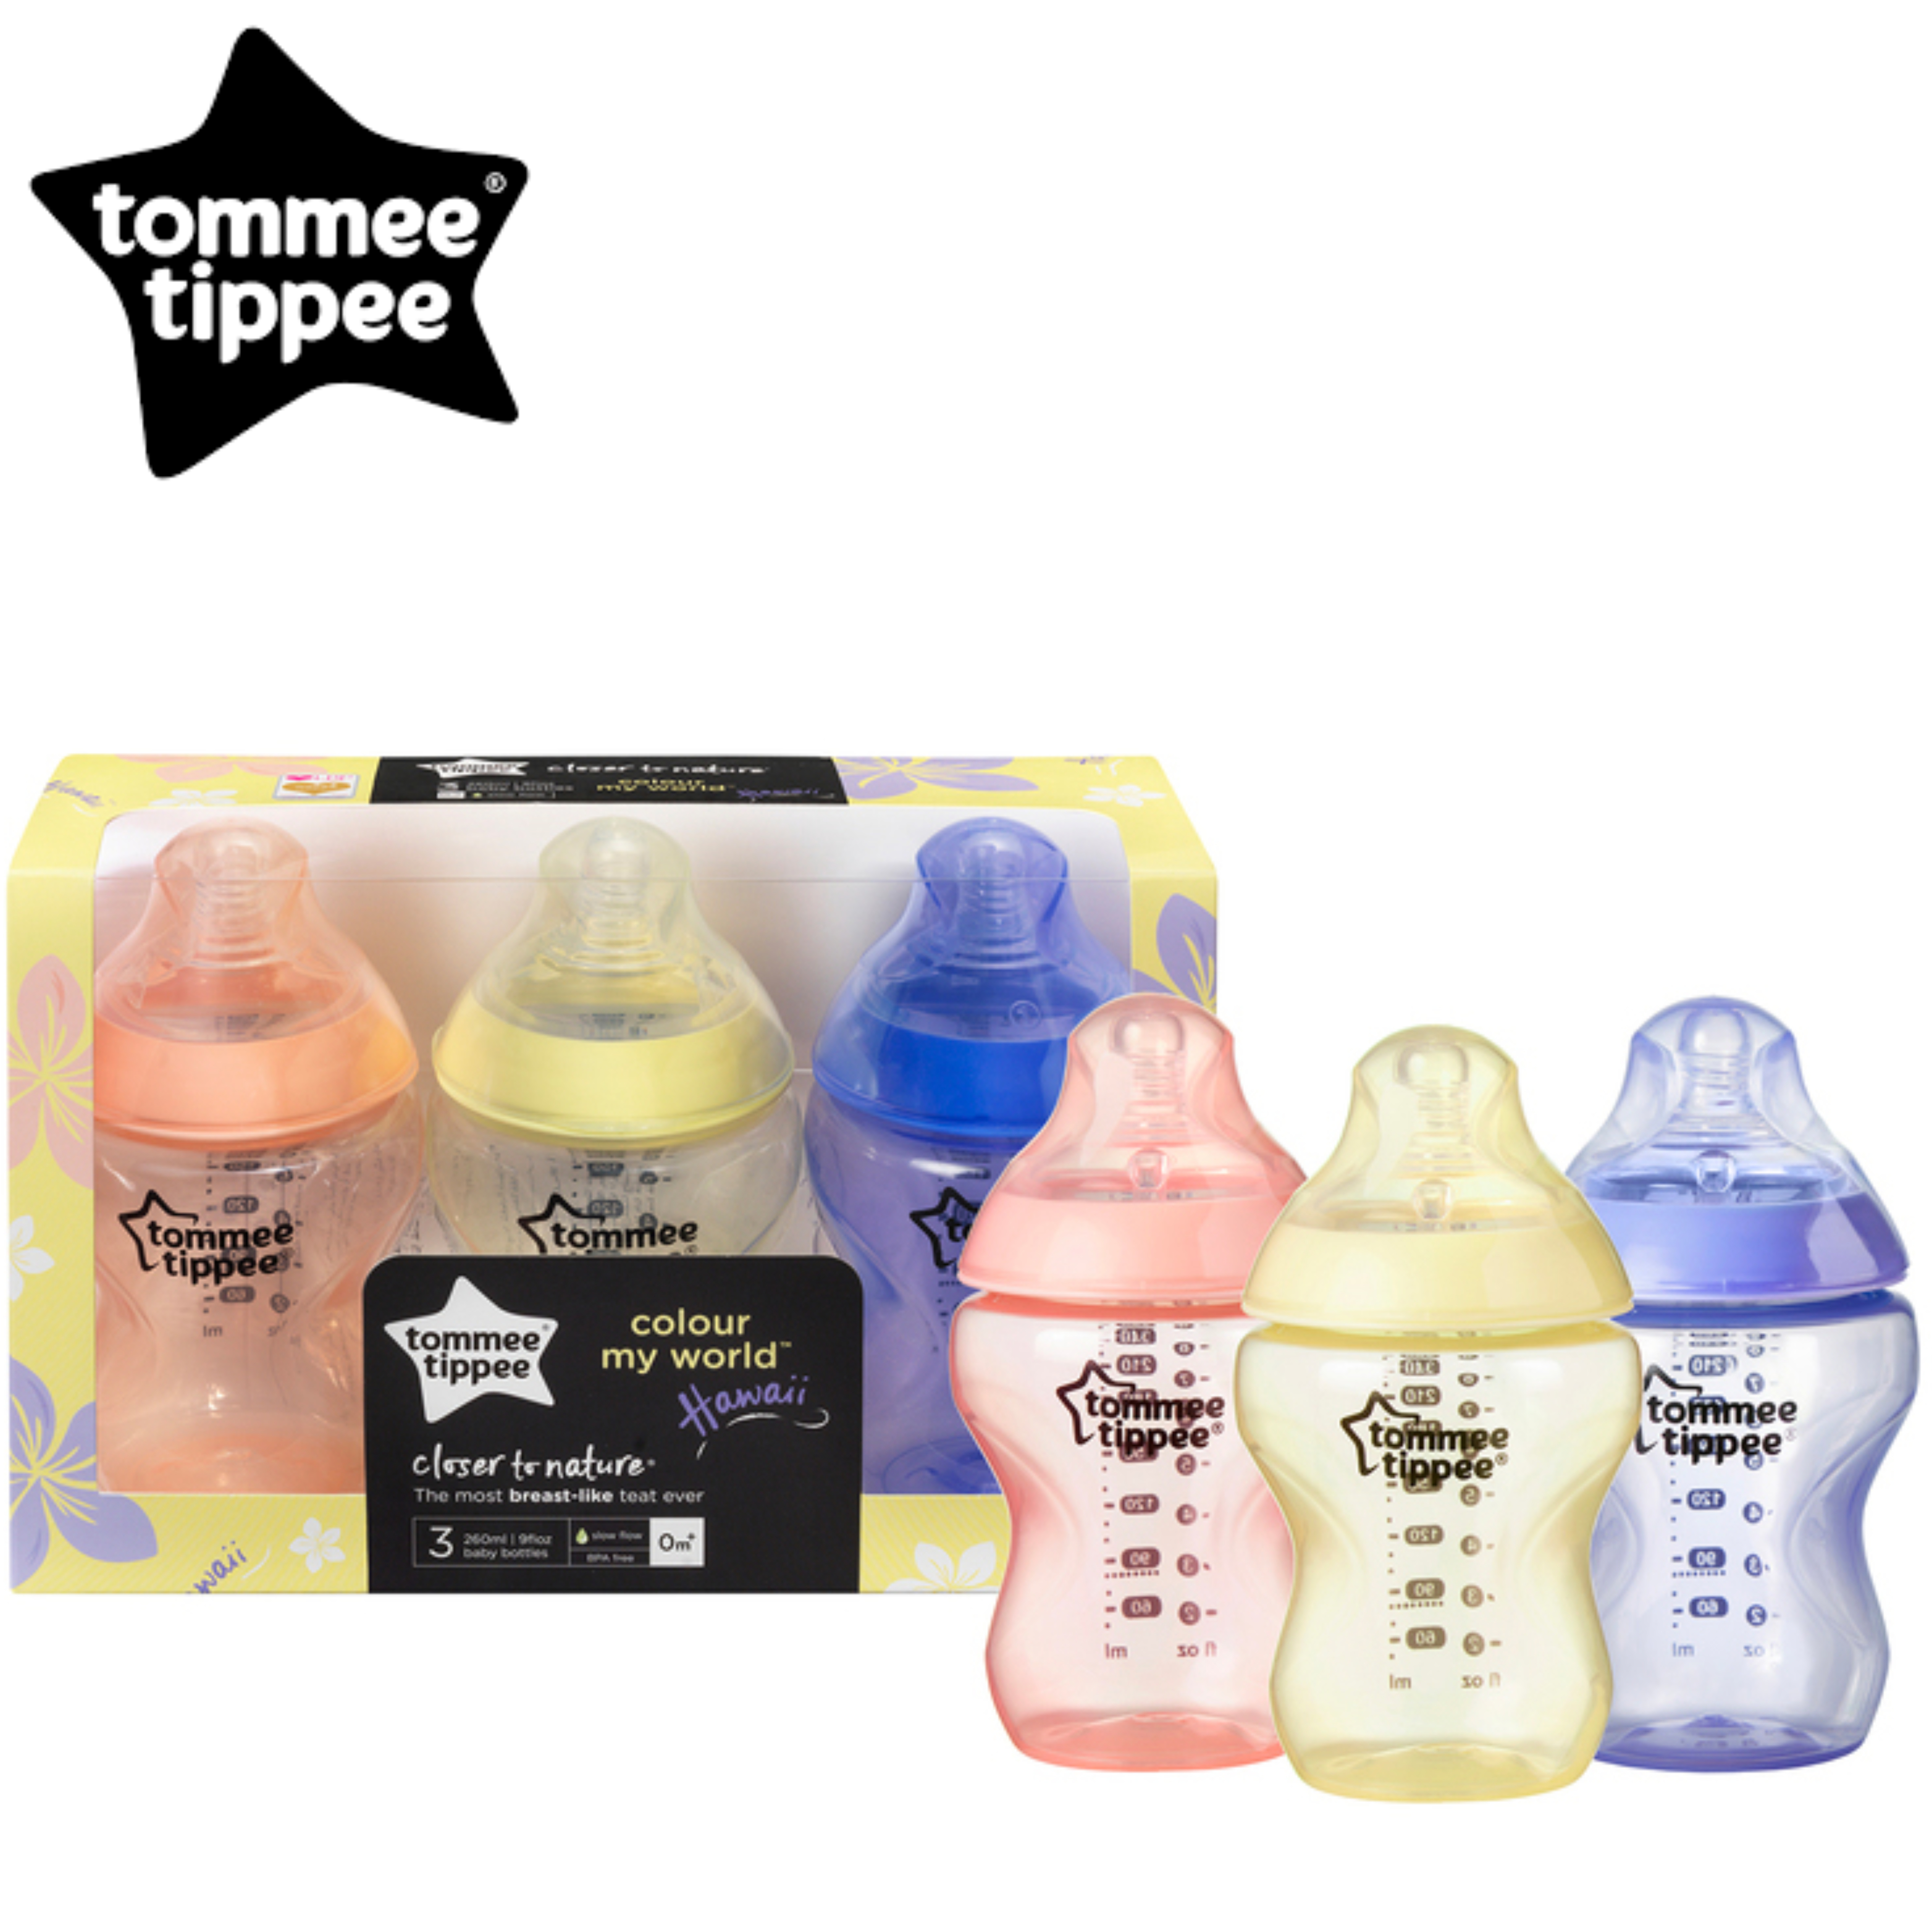 Tommee Tippee Closer to Nature Colour My World Bottle Pink 260ml 3Pk | Anti Colic | New